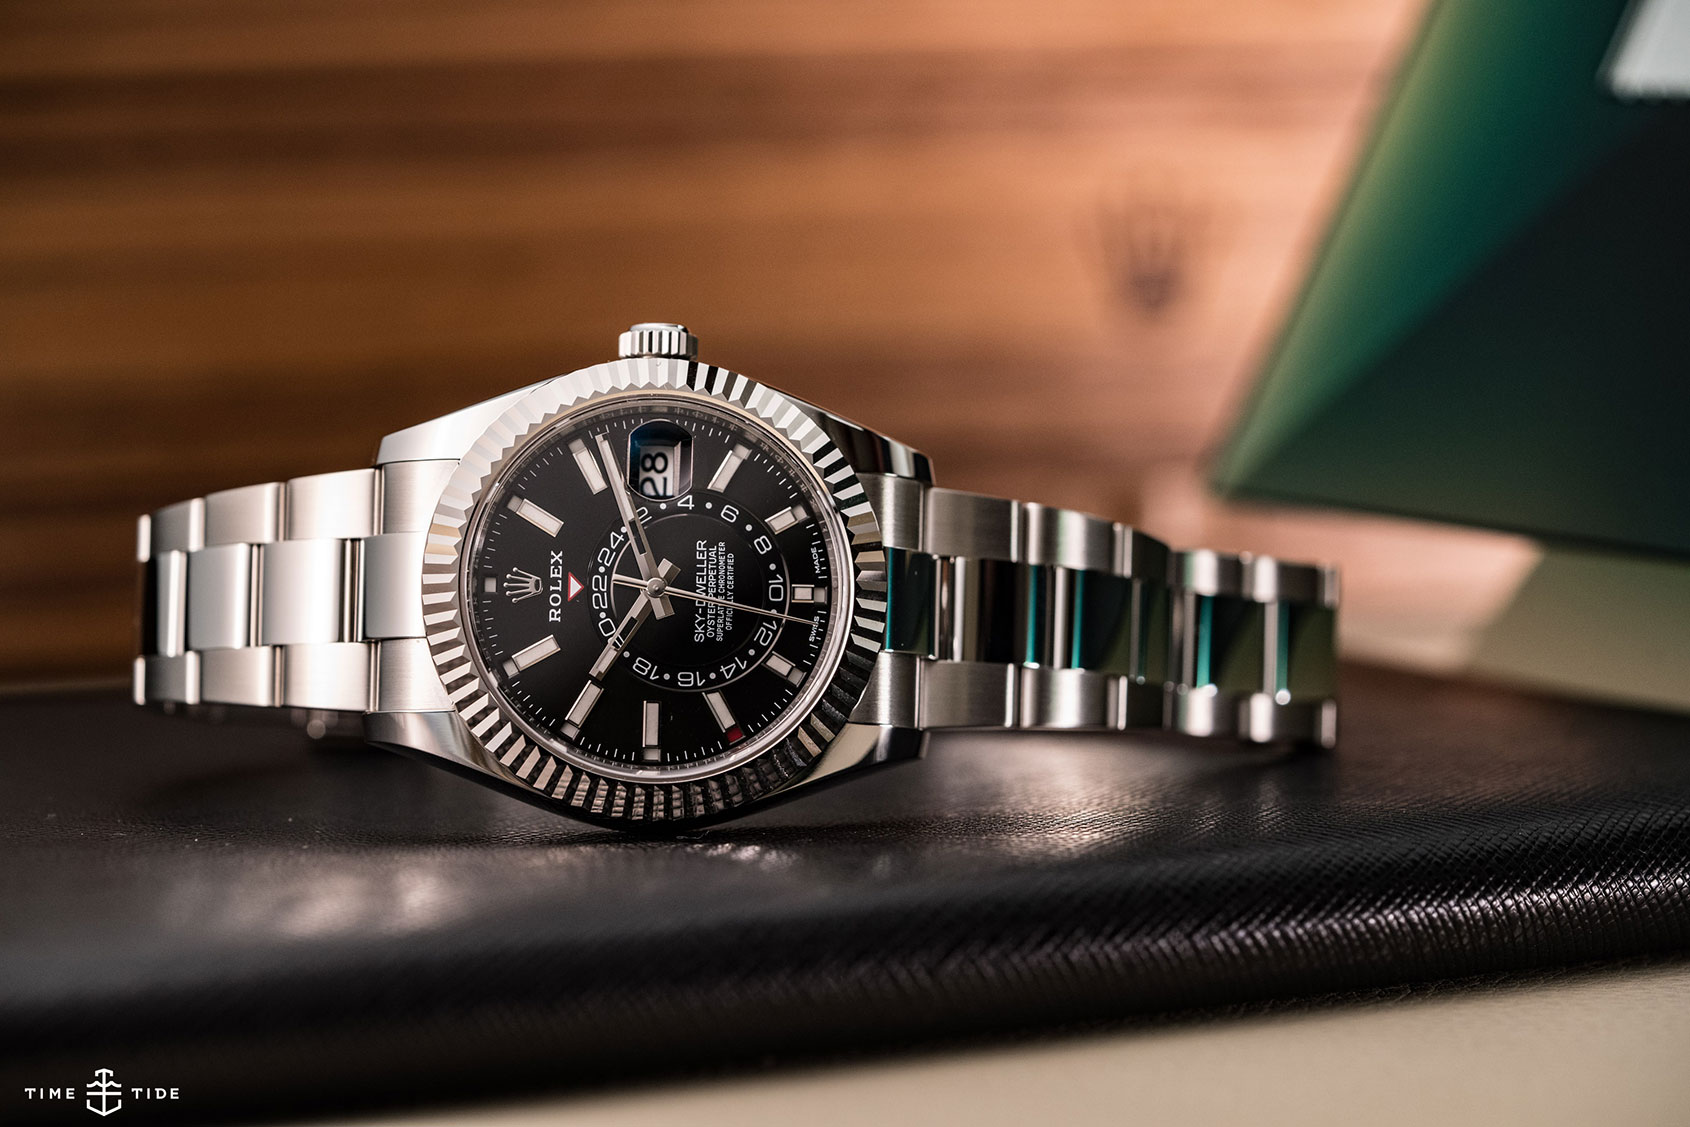 INSIGHT: 2 takes on the Rolex Sky-Dweller from people who bought it